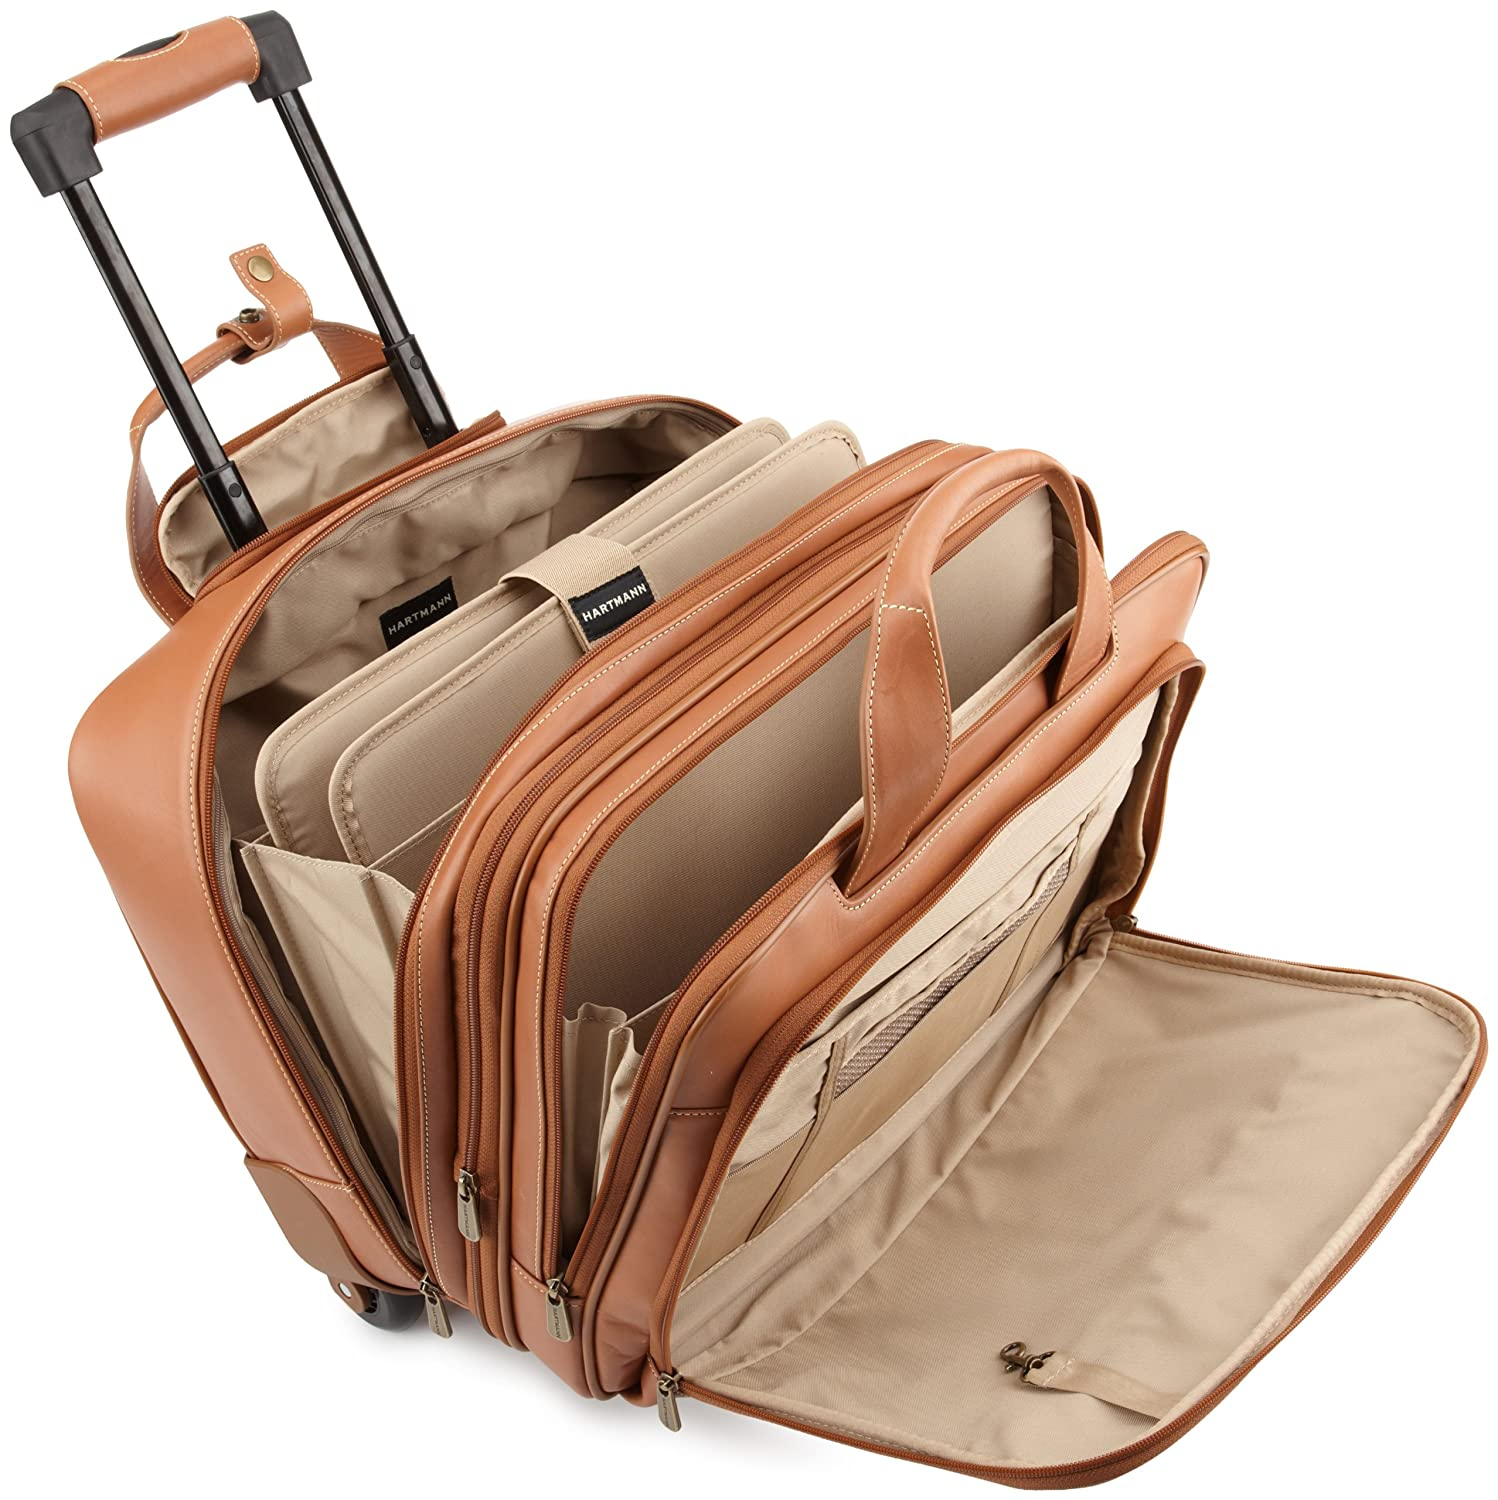 2a0810264913 Hartmann Luggage Belting Leather Expandable Mobile Traveler  Office,Natural,One Size